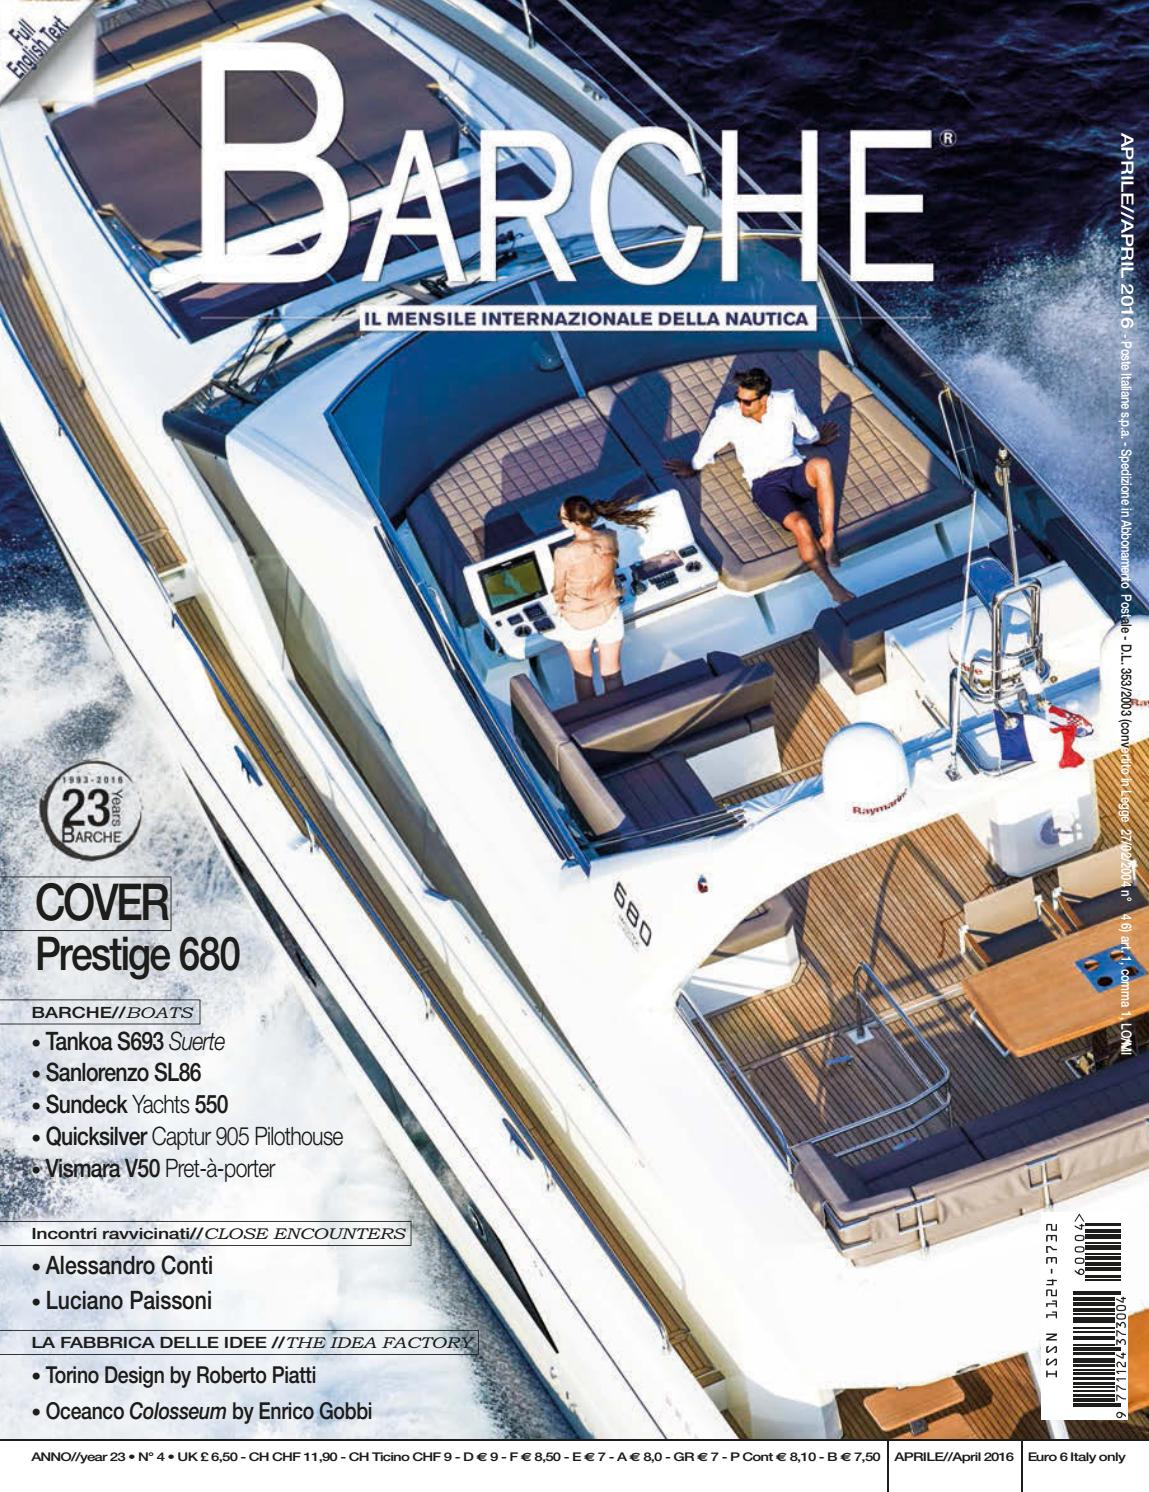 Barche April 2016 By International Sea Press Srl Barche Issuu